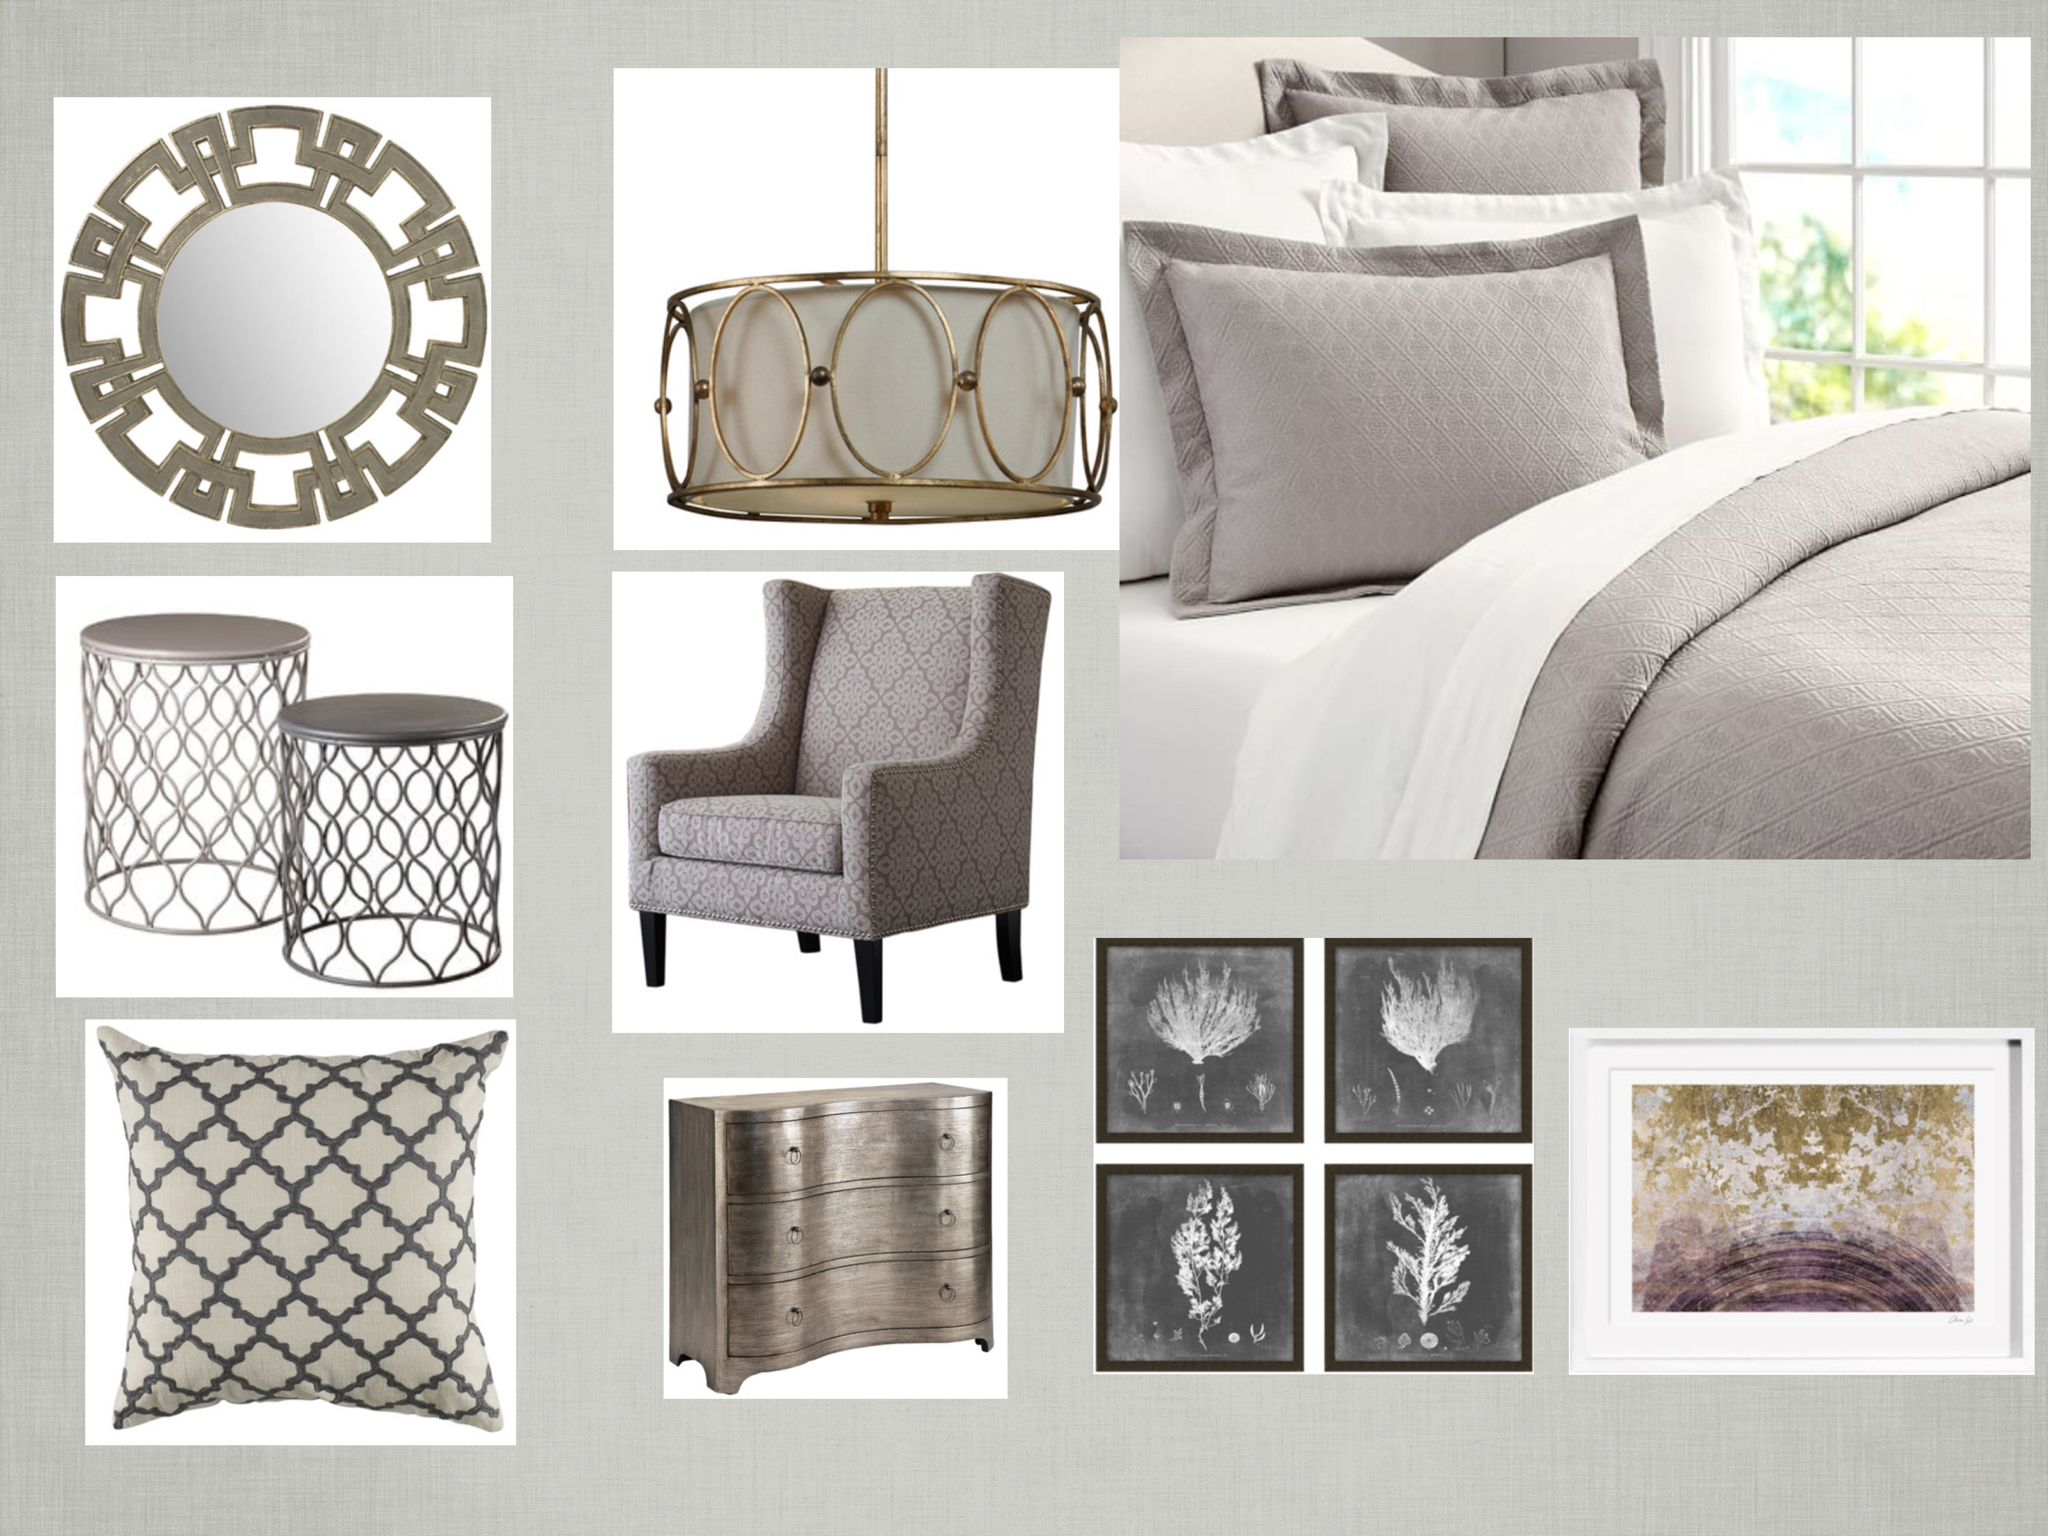 Room inspiration board by Jacqueline K